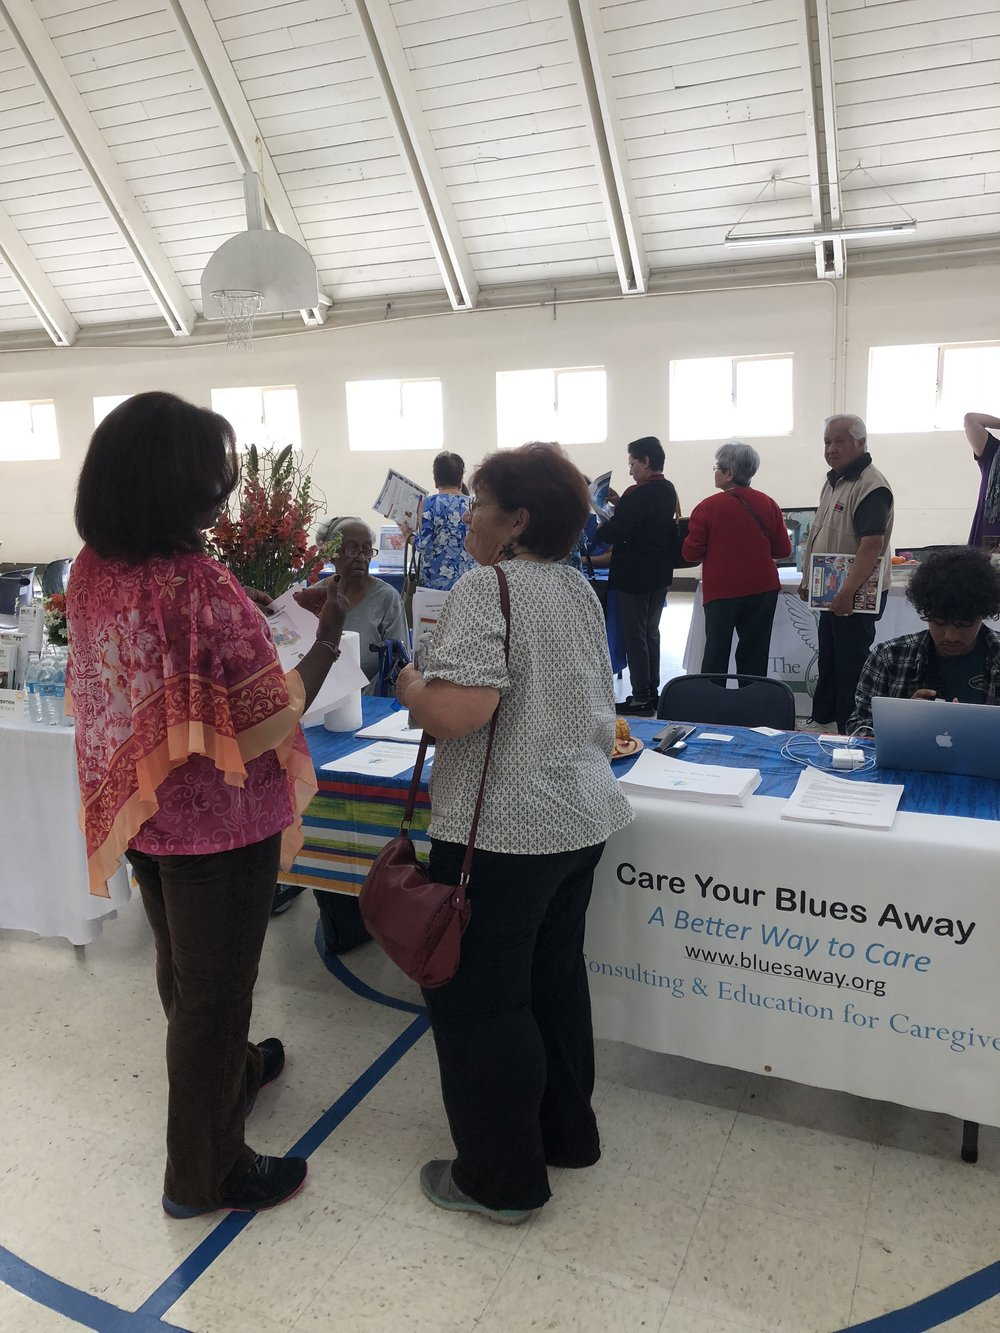 Co Founder Teri Shepherd speaking with Memory Fair guest about the importance of Healthy Habits for Caregivers.